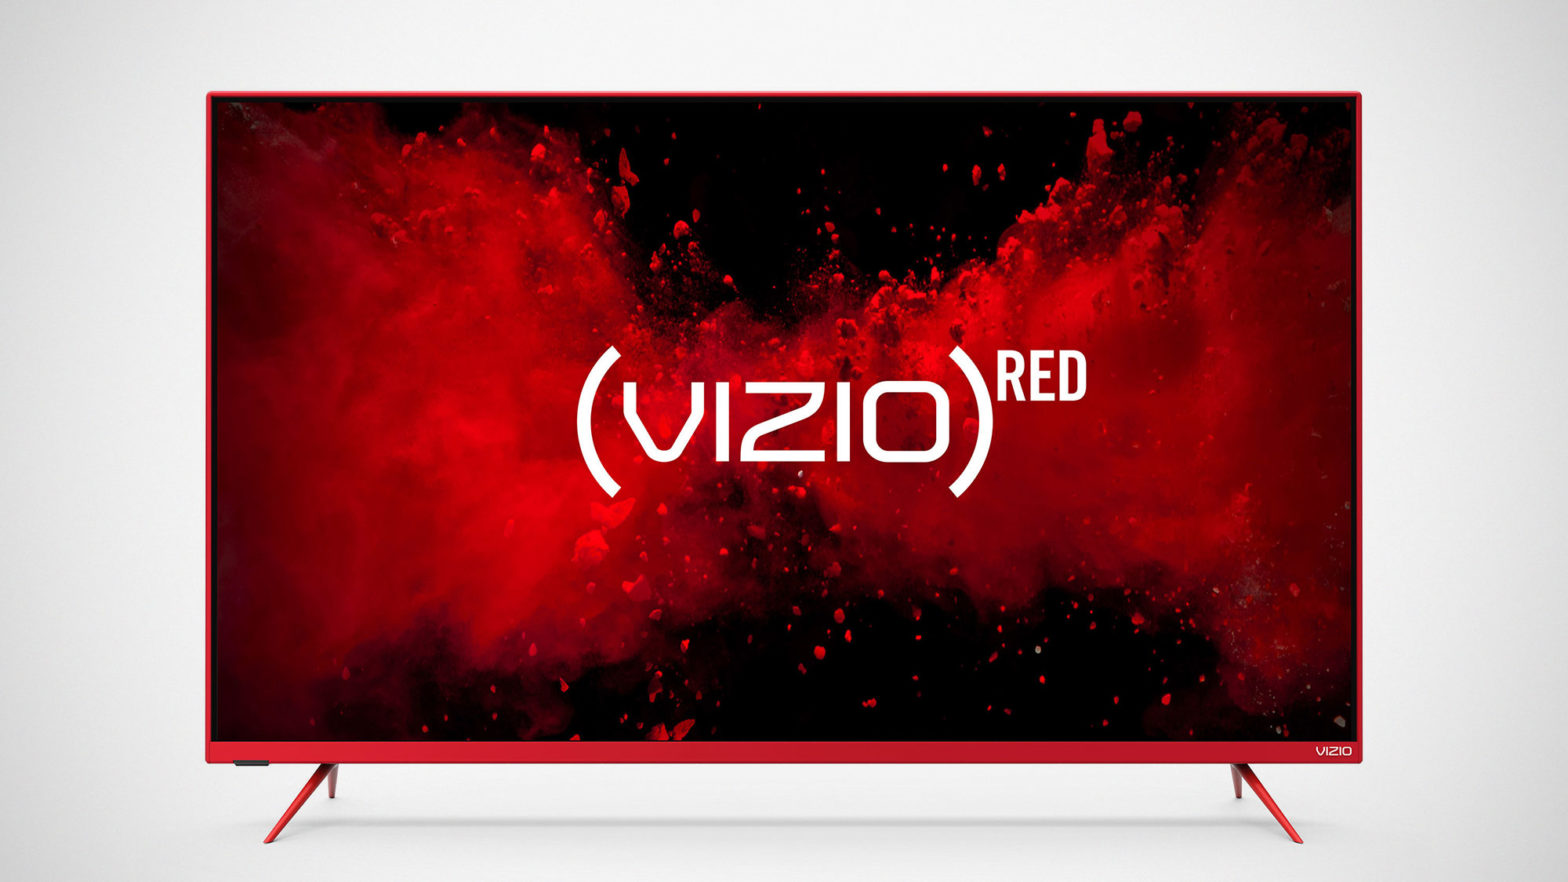 "(VIZIO)RED M-Series Quantum 50"" Class 4K HDR Smart TV"